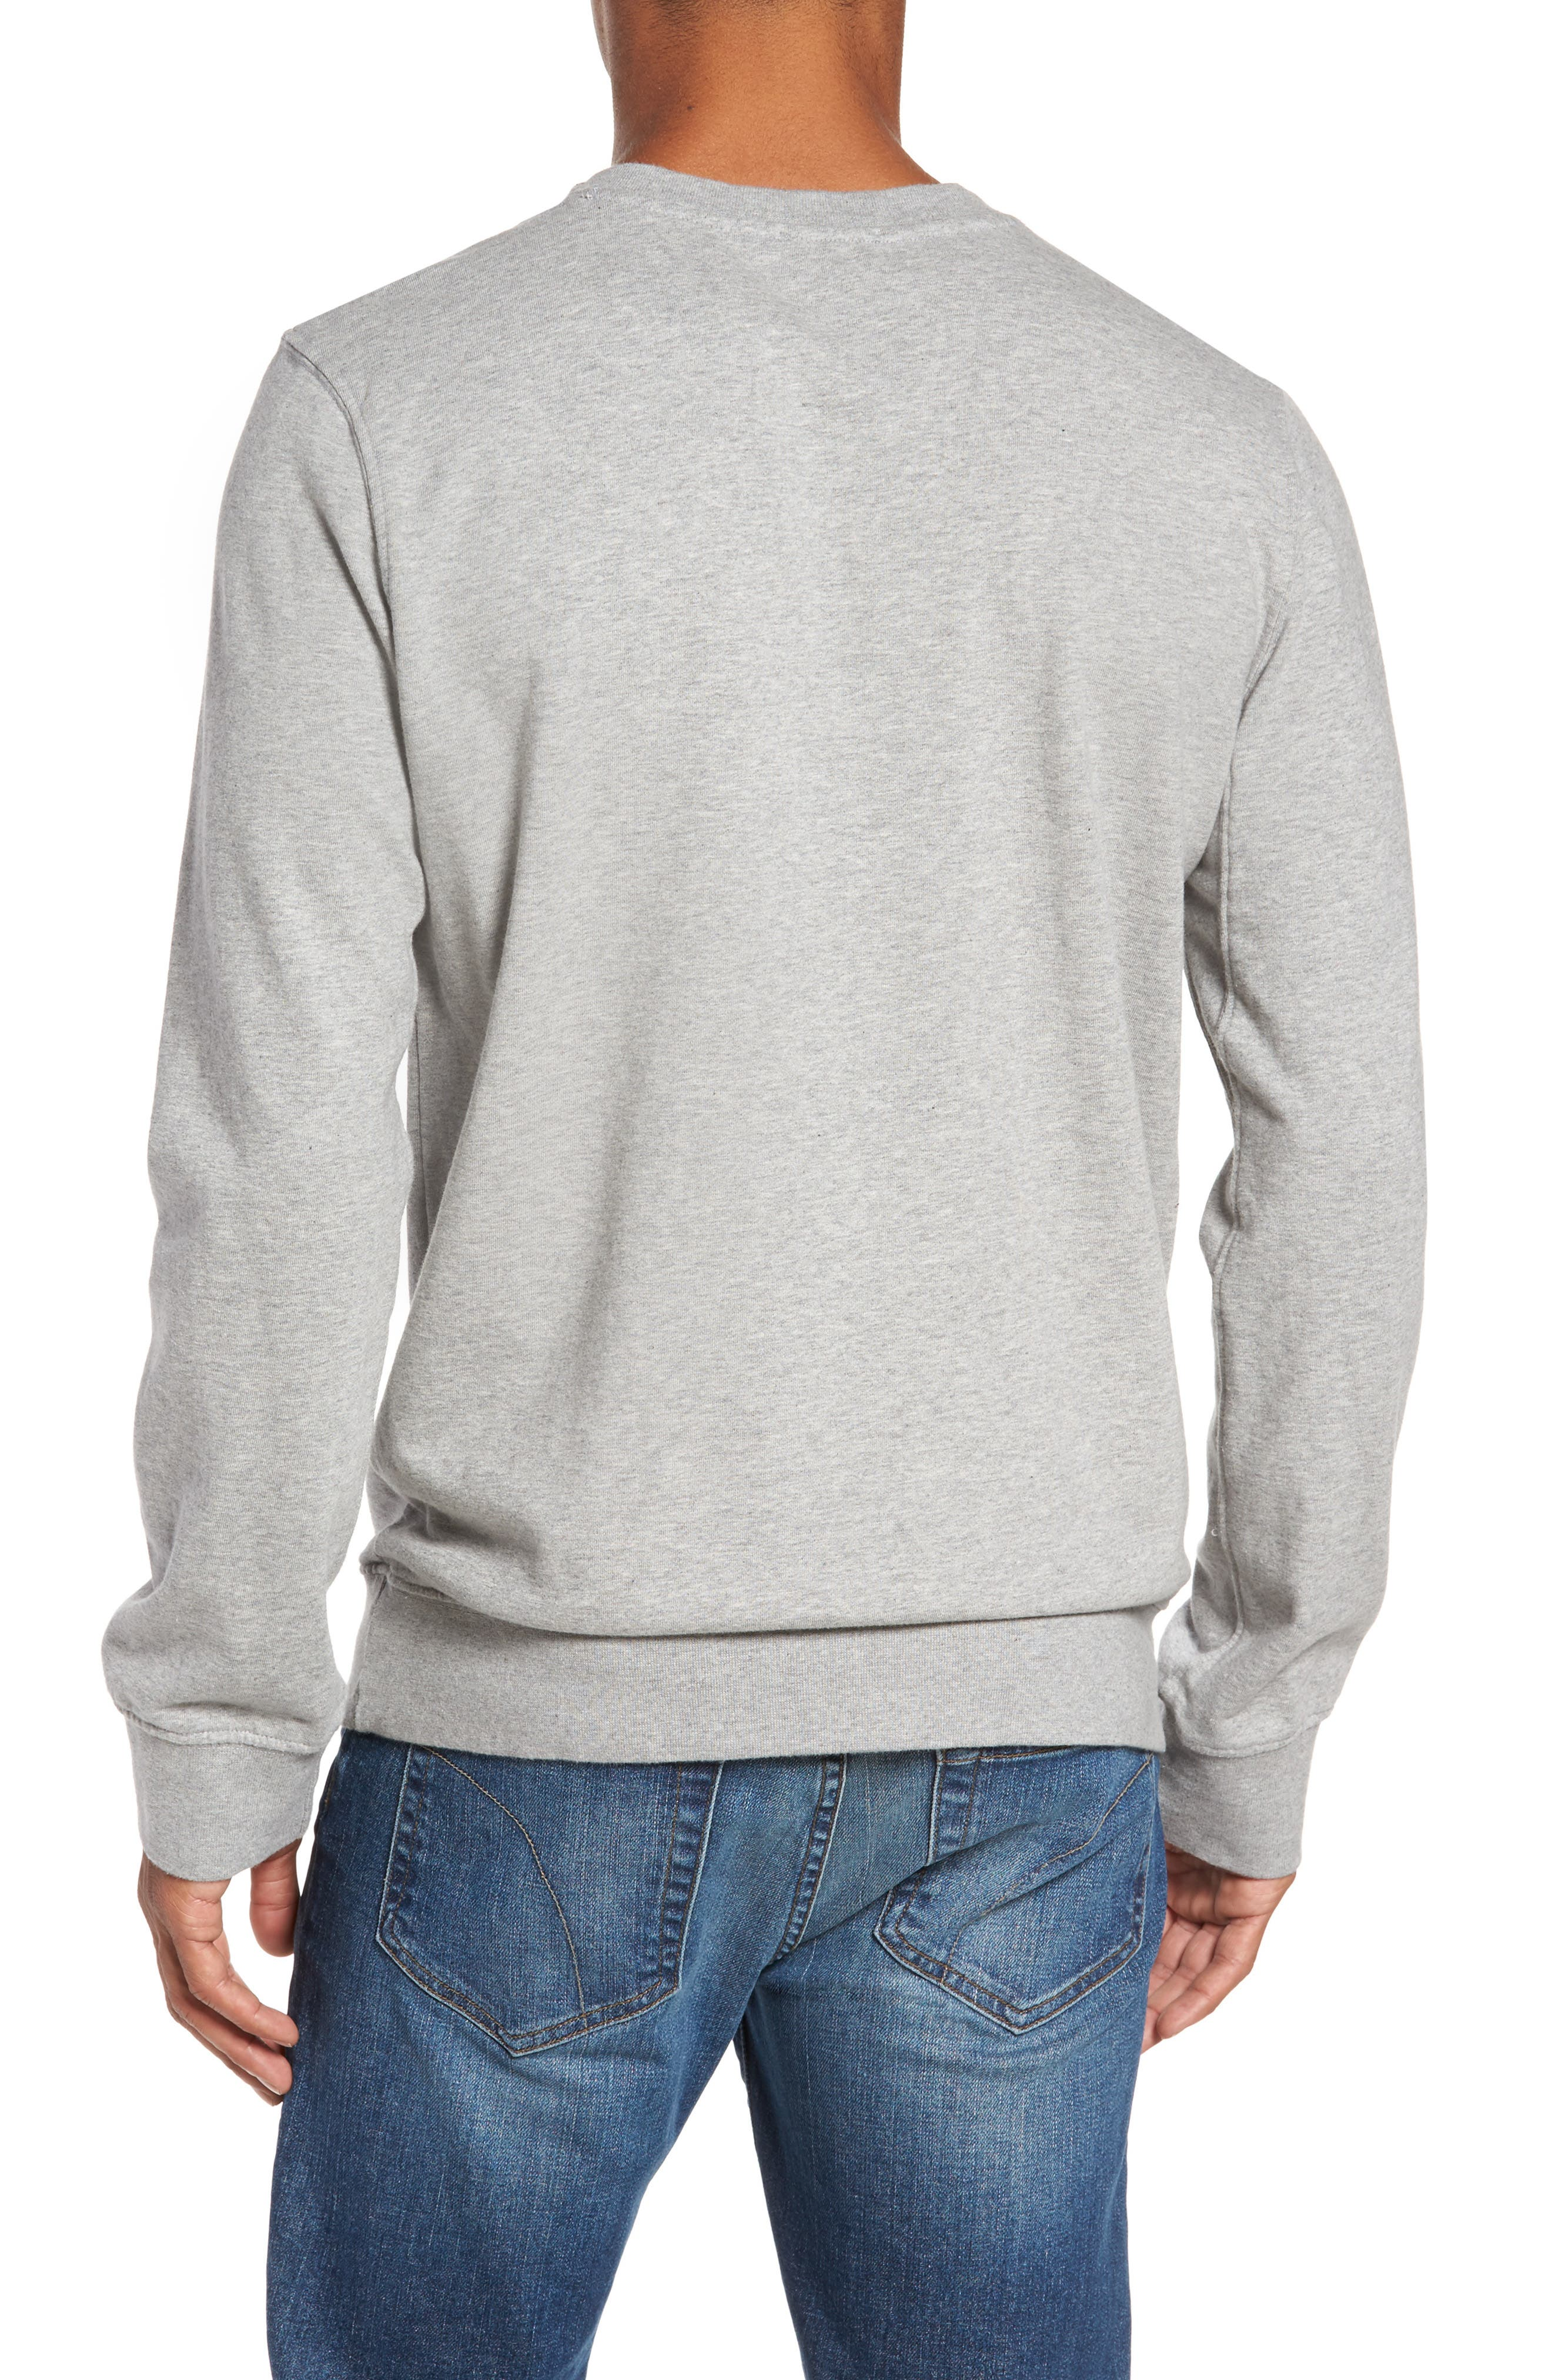 French Terry Sweatshirt,                             Alternate thumbnail 5, color,